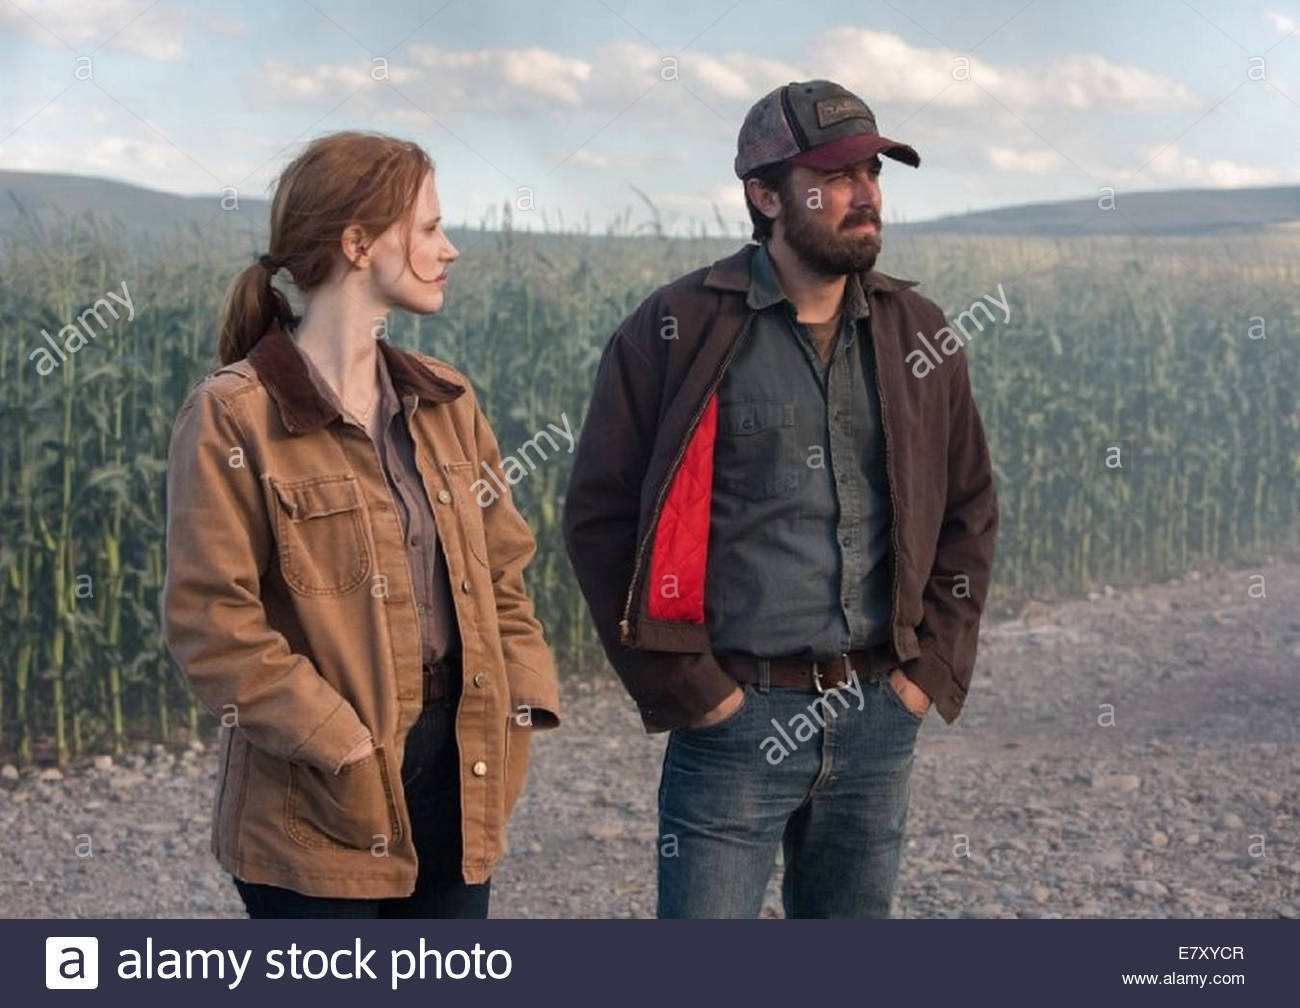 INTERSTELLAR 2014 Paramount Pictures film with Jessica Chastain and Casey Affleck - Stock Image